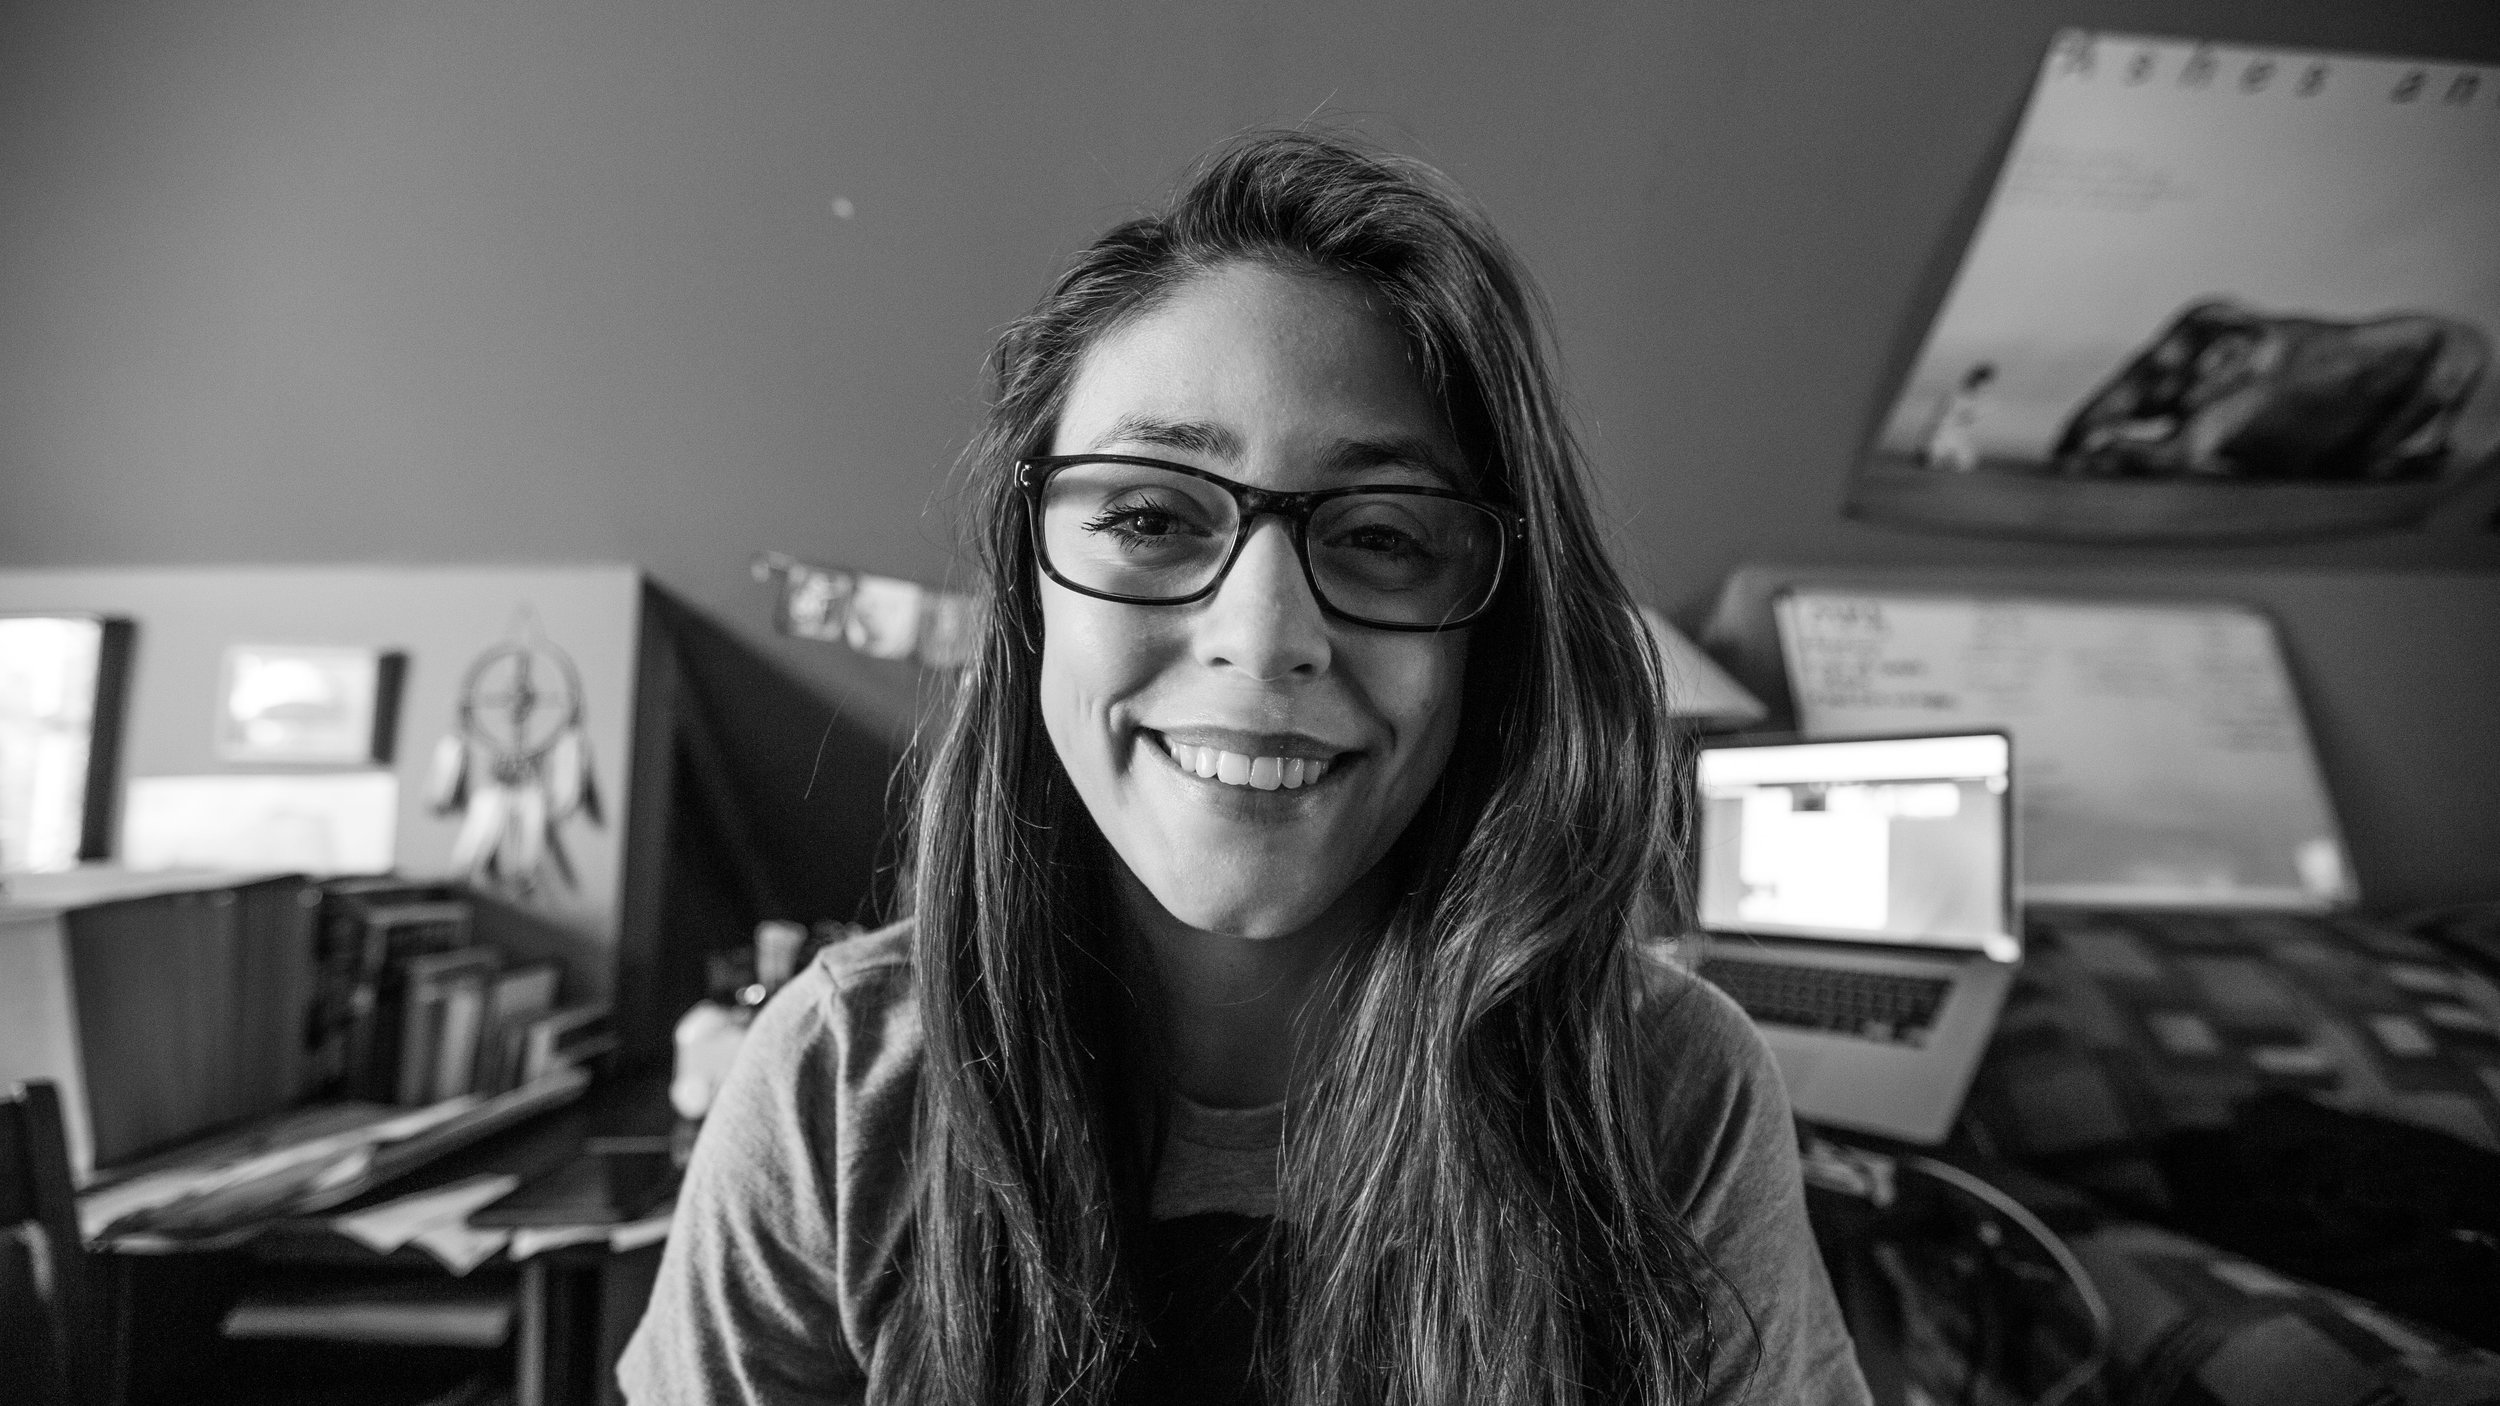 PALOMA STARR   Full time freelance videographer, photographer and digital marketer mainly working with local bands producing music videos as well as the content creator for podcast ROADIE FREE RADIO.